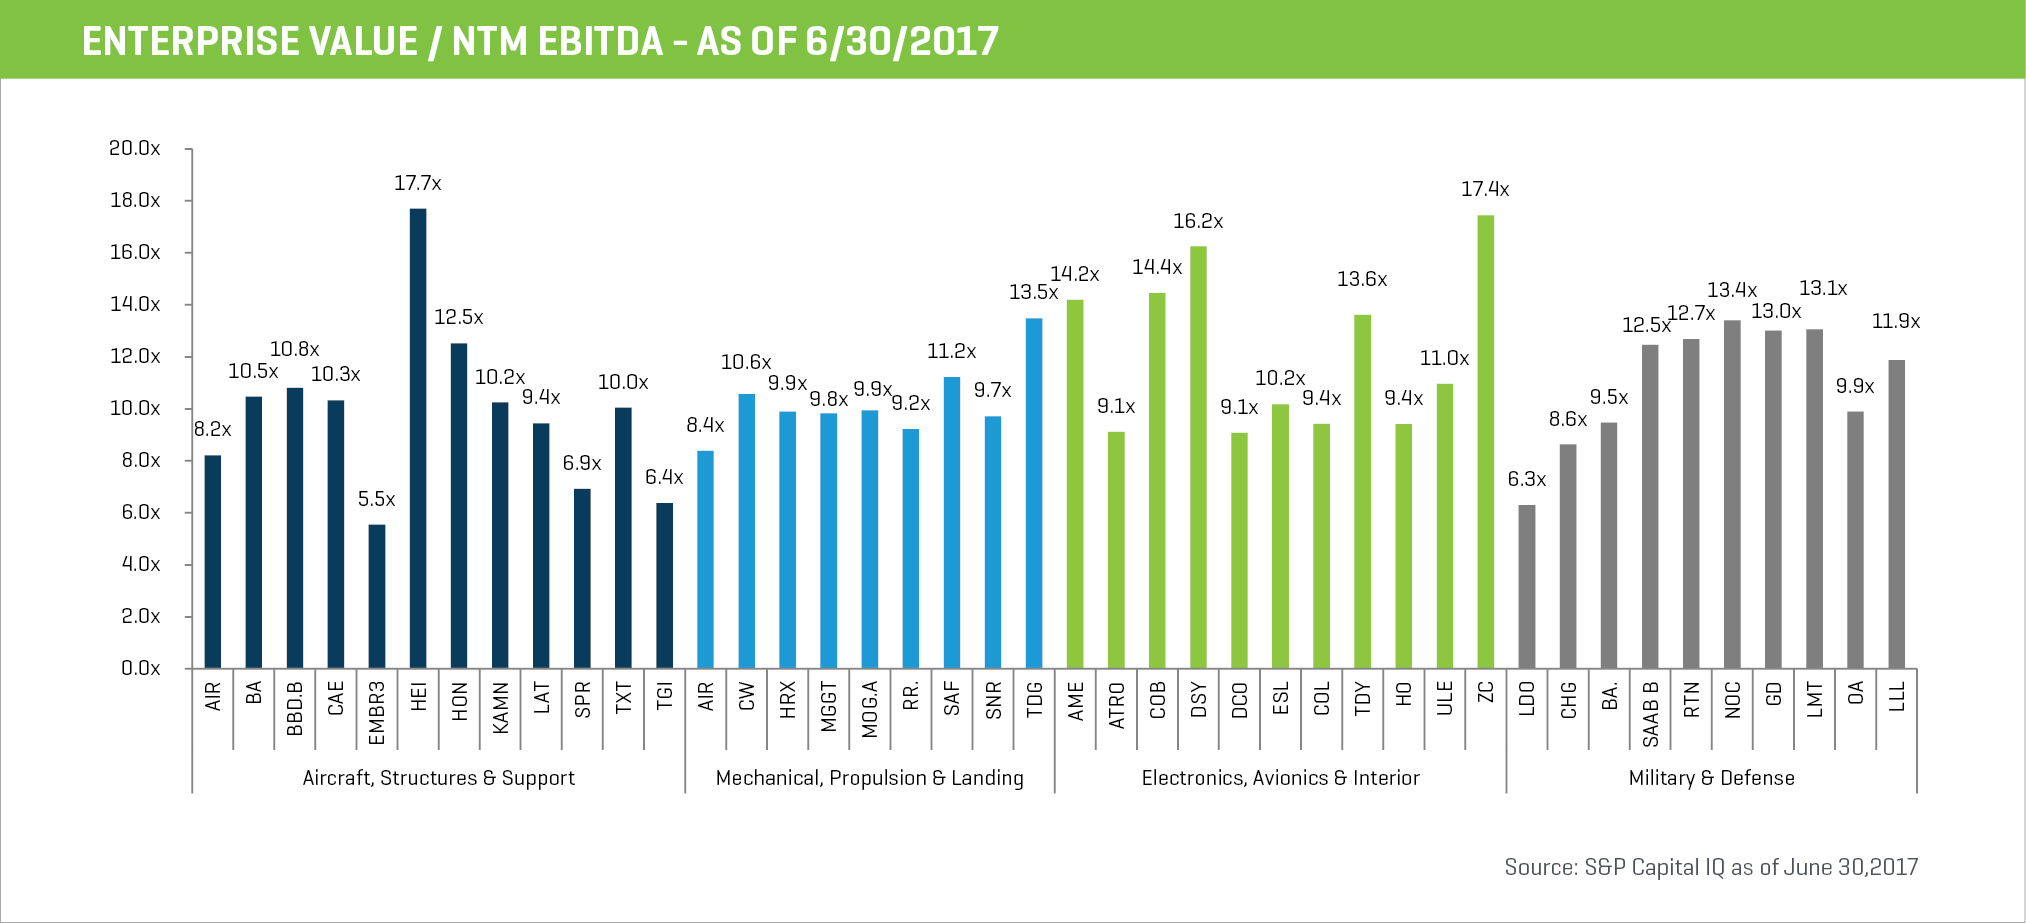 q2 2017 enterprise value ntm ebitda